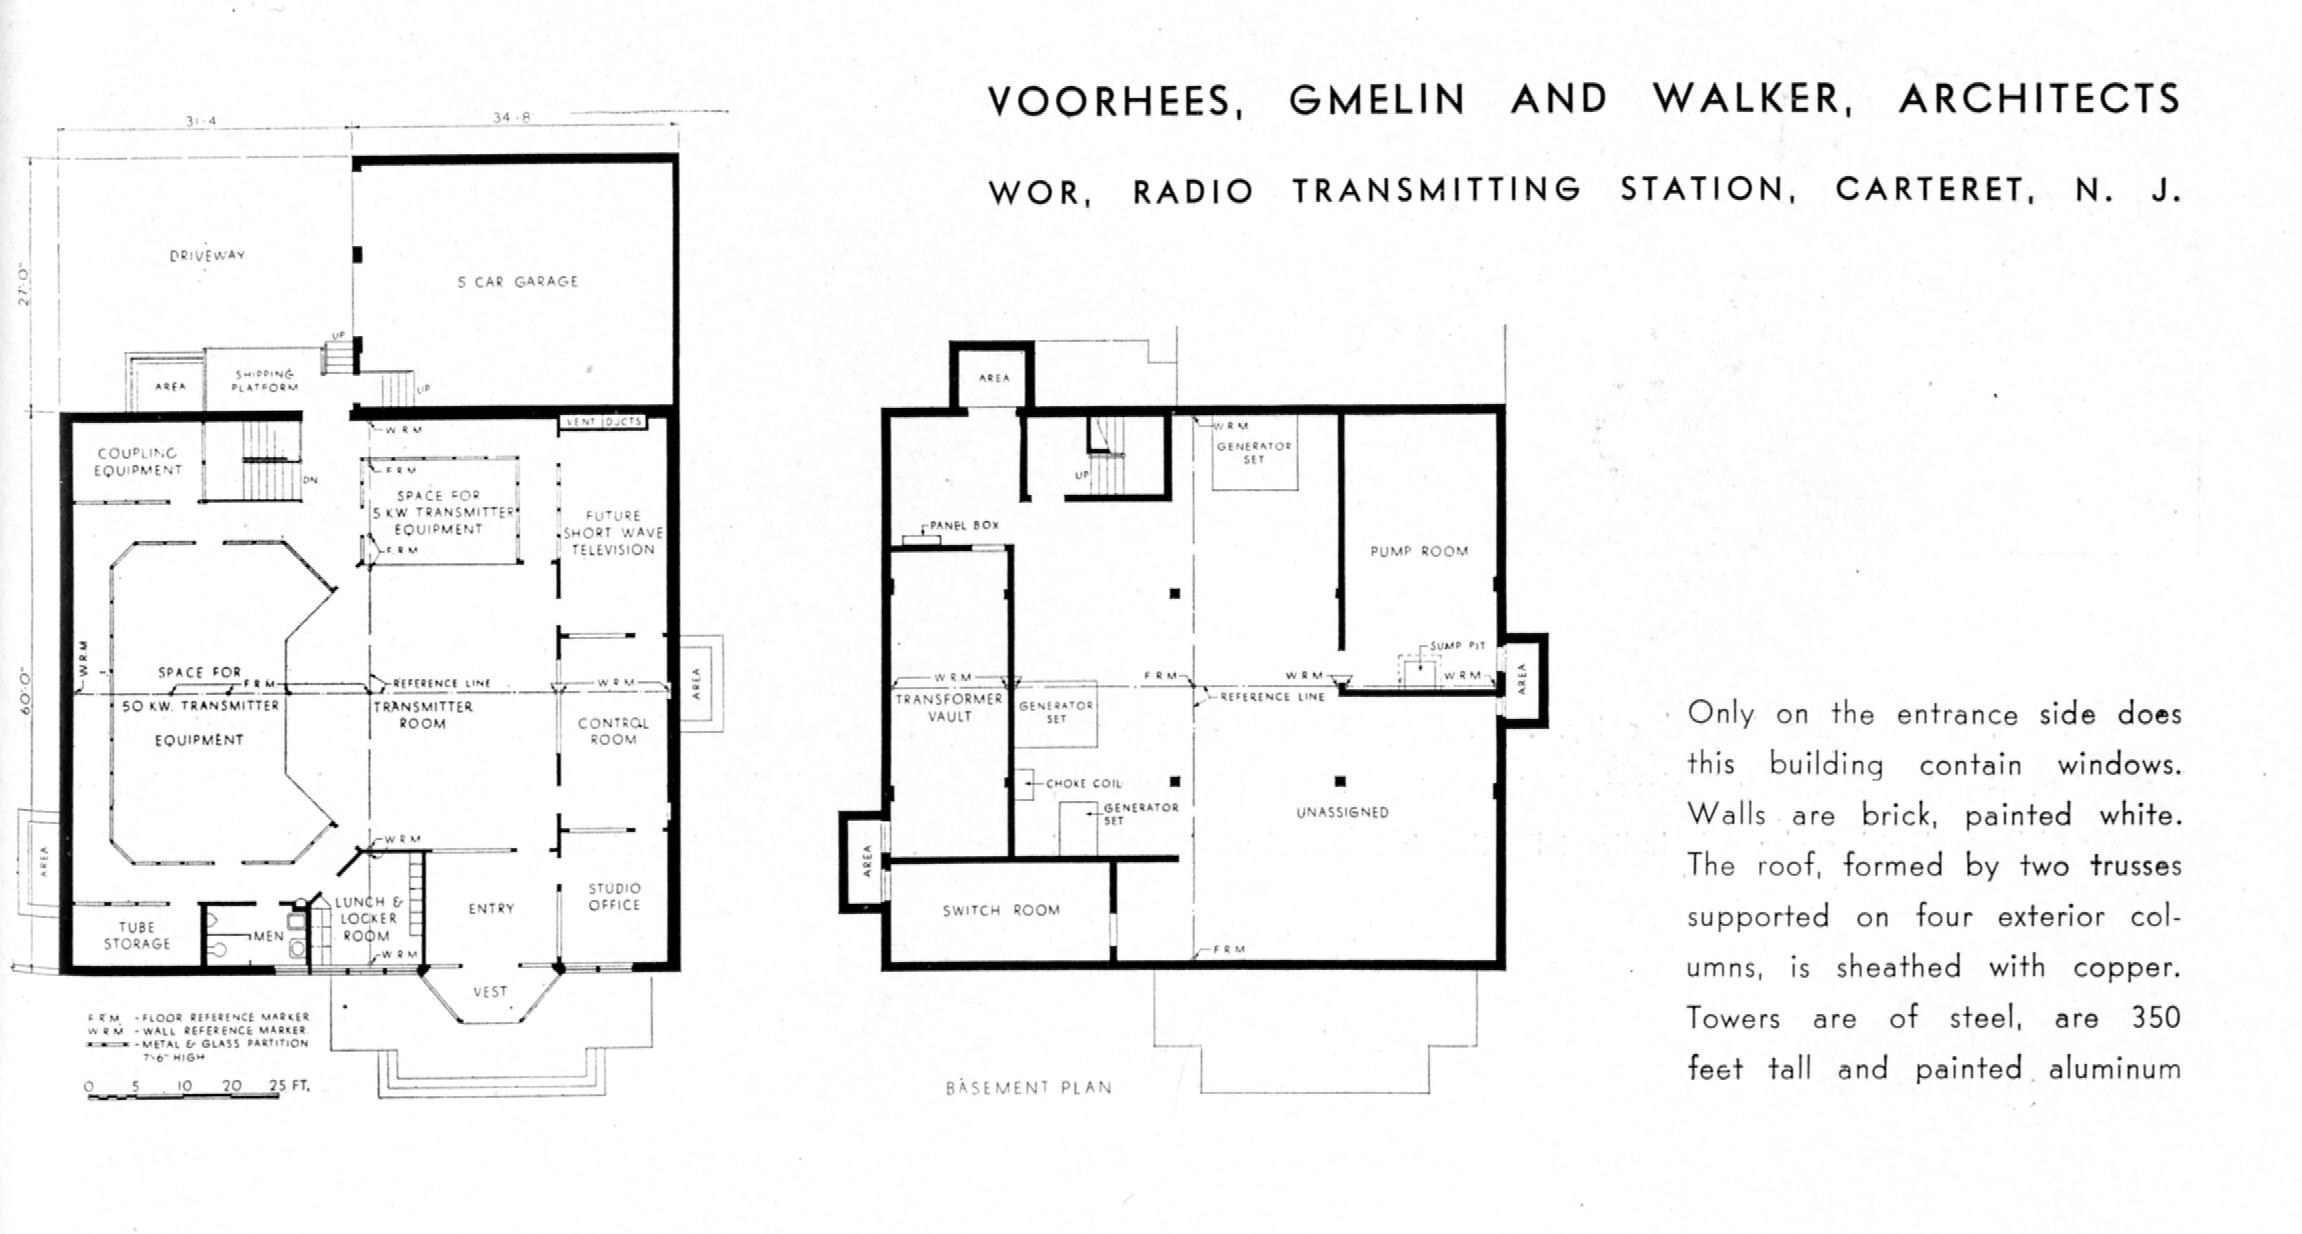 Wires Walls And Wireless Notes Toward An Investigation Of Radio Wiring Inside Fig 6 Voorhees Gmelin Walker Wor Transmitting Station